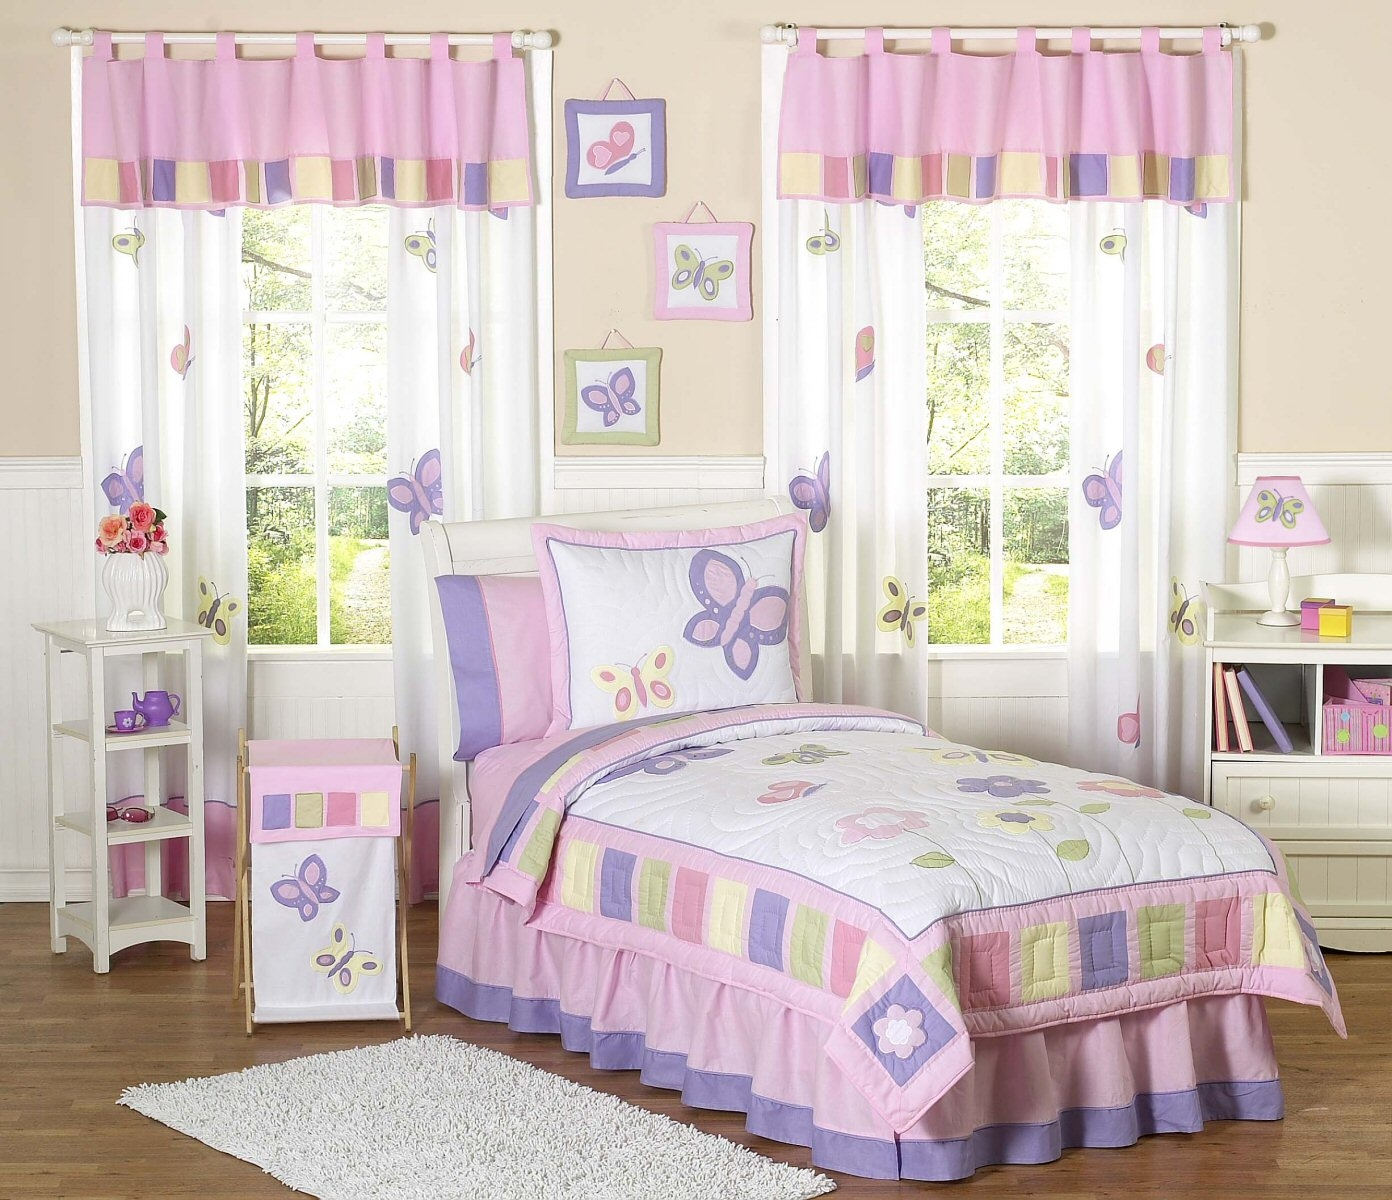 Kids Butterfly Bedding Pink Purple Lavender Twin Fullqueen Pertaining To Purple Curtains For Kids Room (Image 14 of 25)